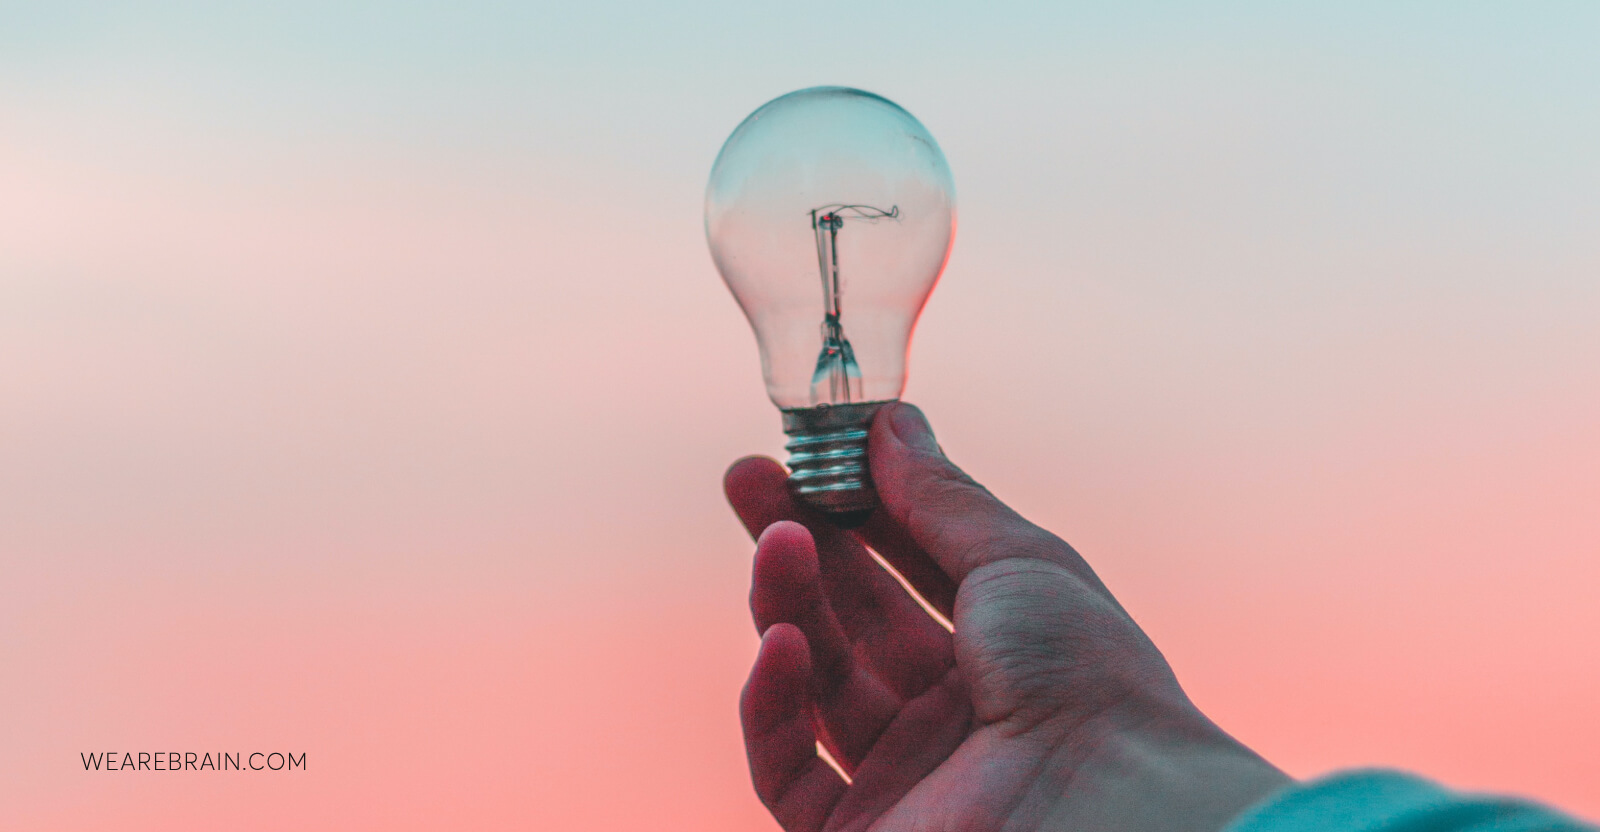 image of a hand holding a lightbulb